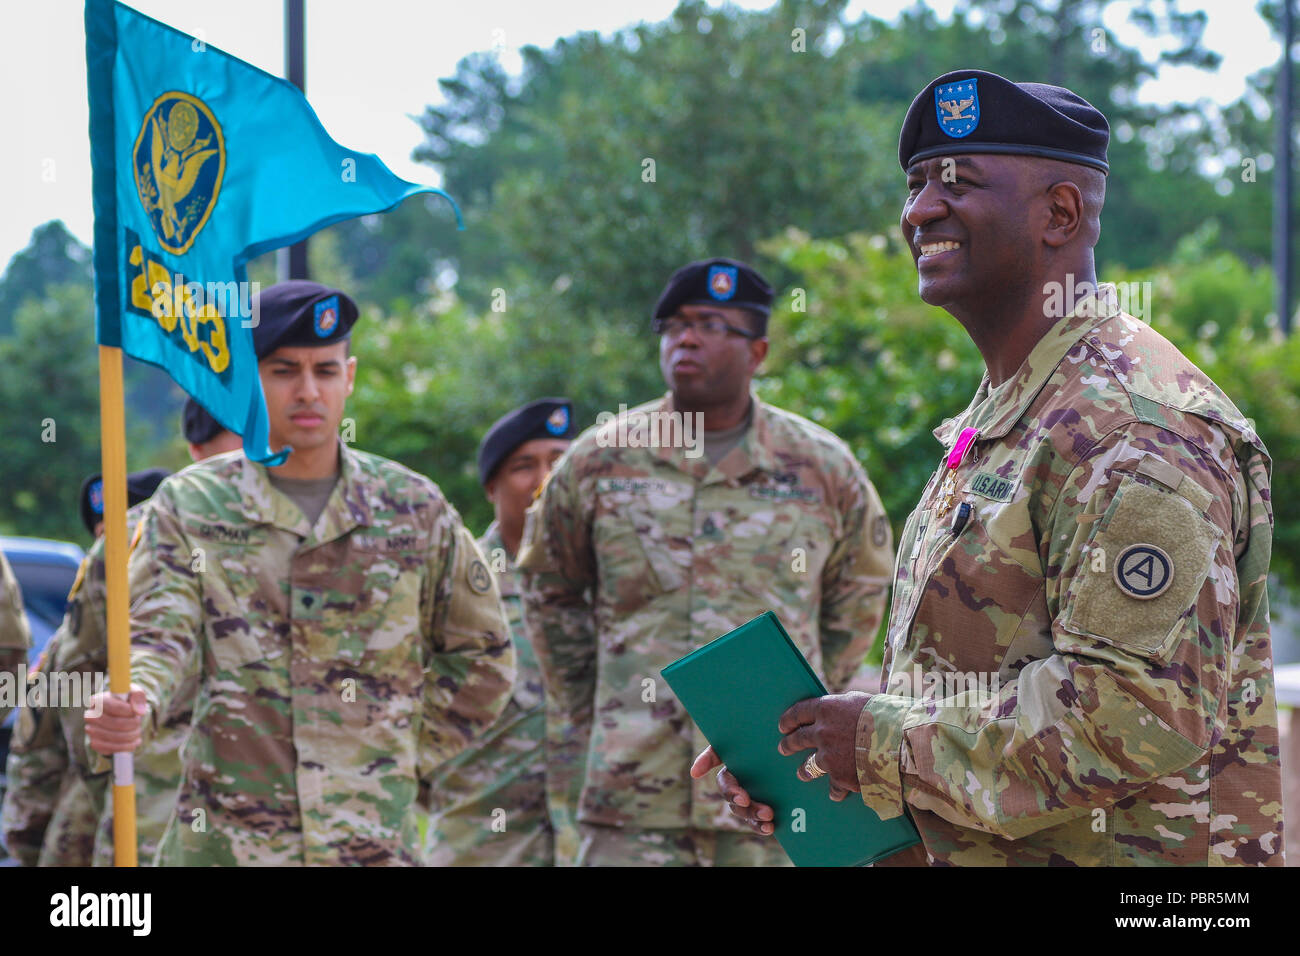 Col. Oscar W. Doward Jr., outgoing commander of the 2503rd Digital Liaison Detachment, U.S. Army Central, speaks to the audience during his award presentation prior to his change-of-command ceremony July 19, 2018, at USARCENT headquarters on Shaw Air Force Base, S.C. (U.S. Army photo by Sgt. Von Marie Donato) Stock Photo